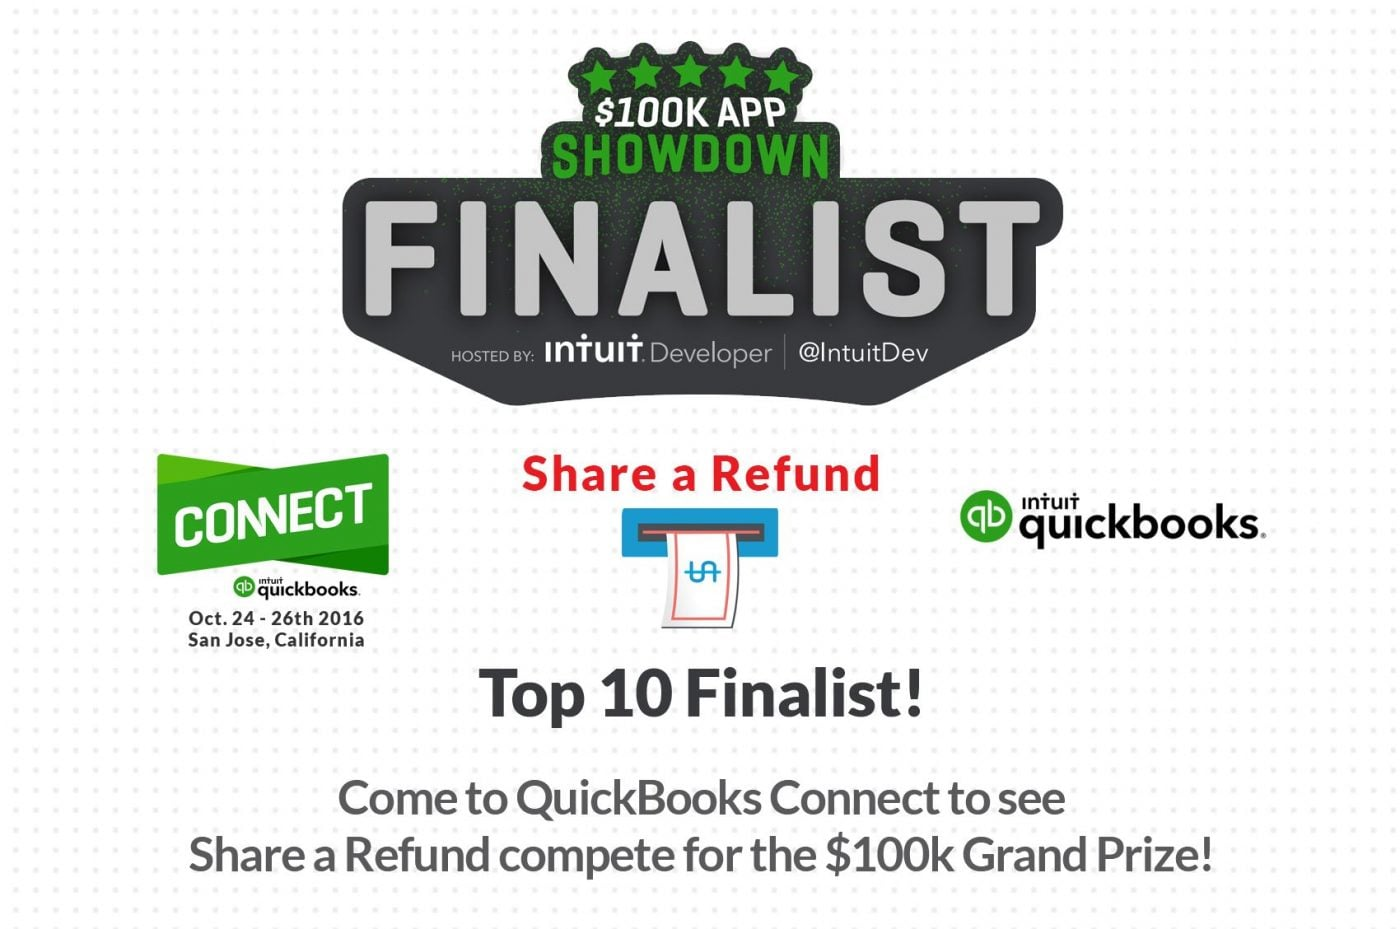 app showdown finalist for qbo connect